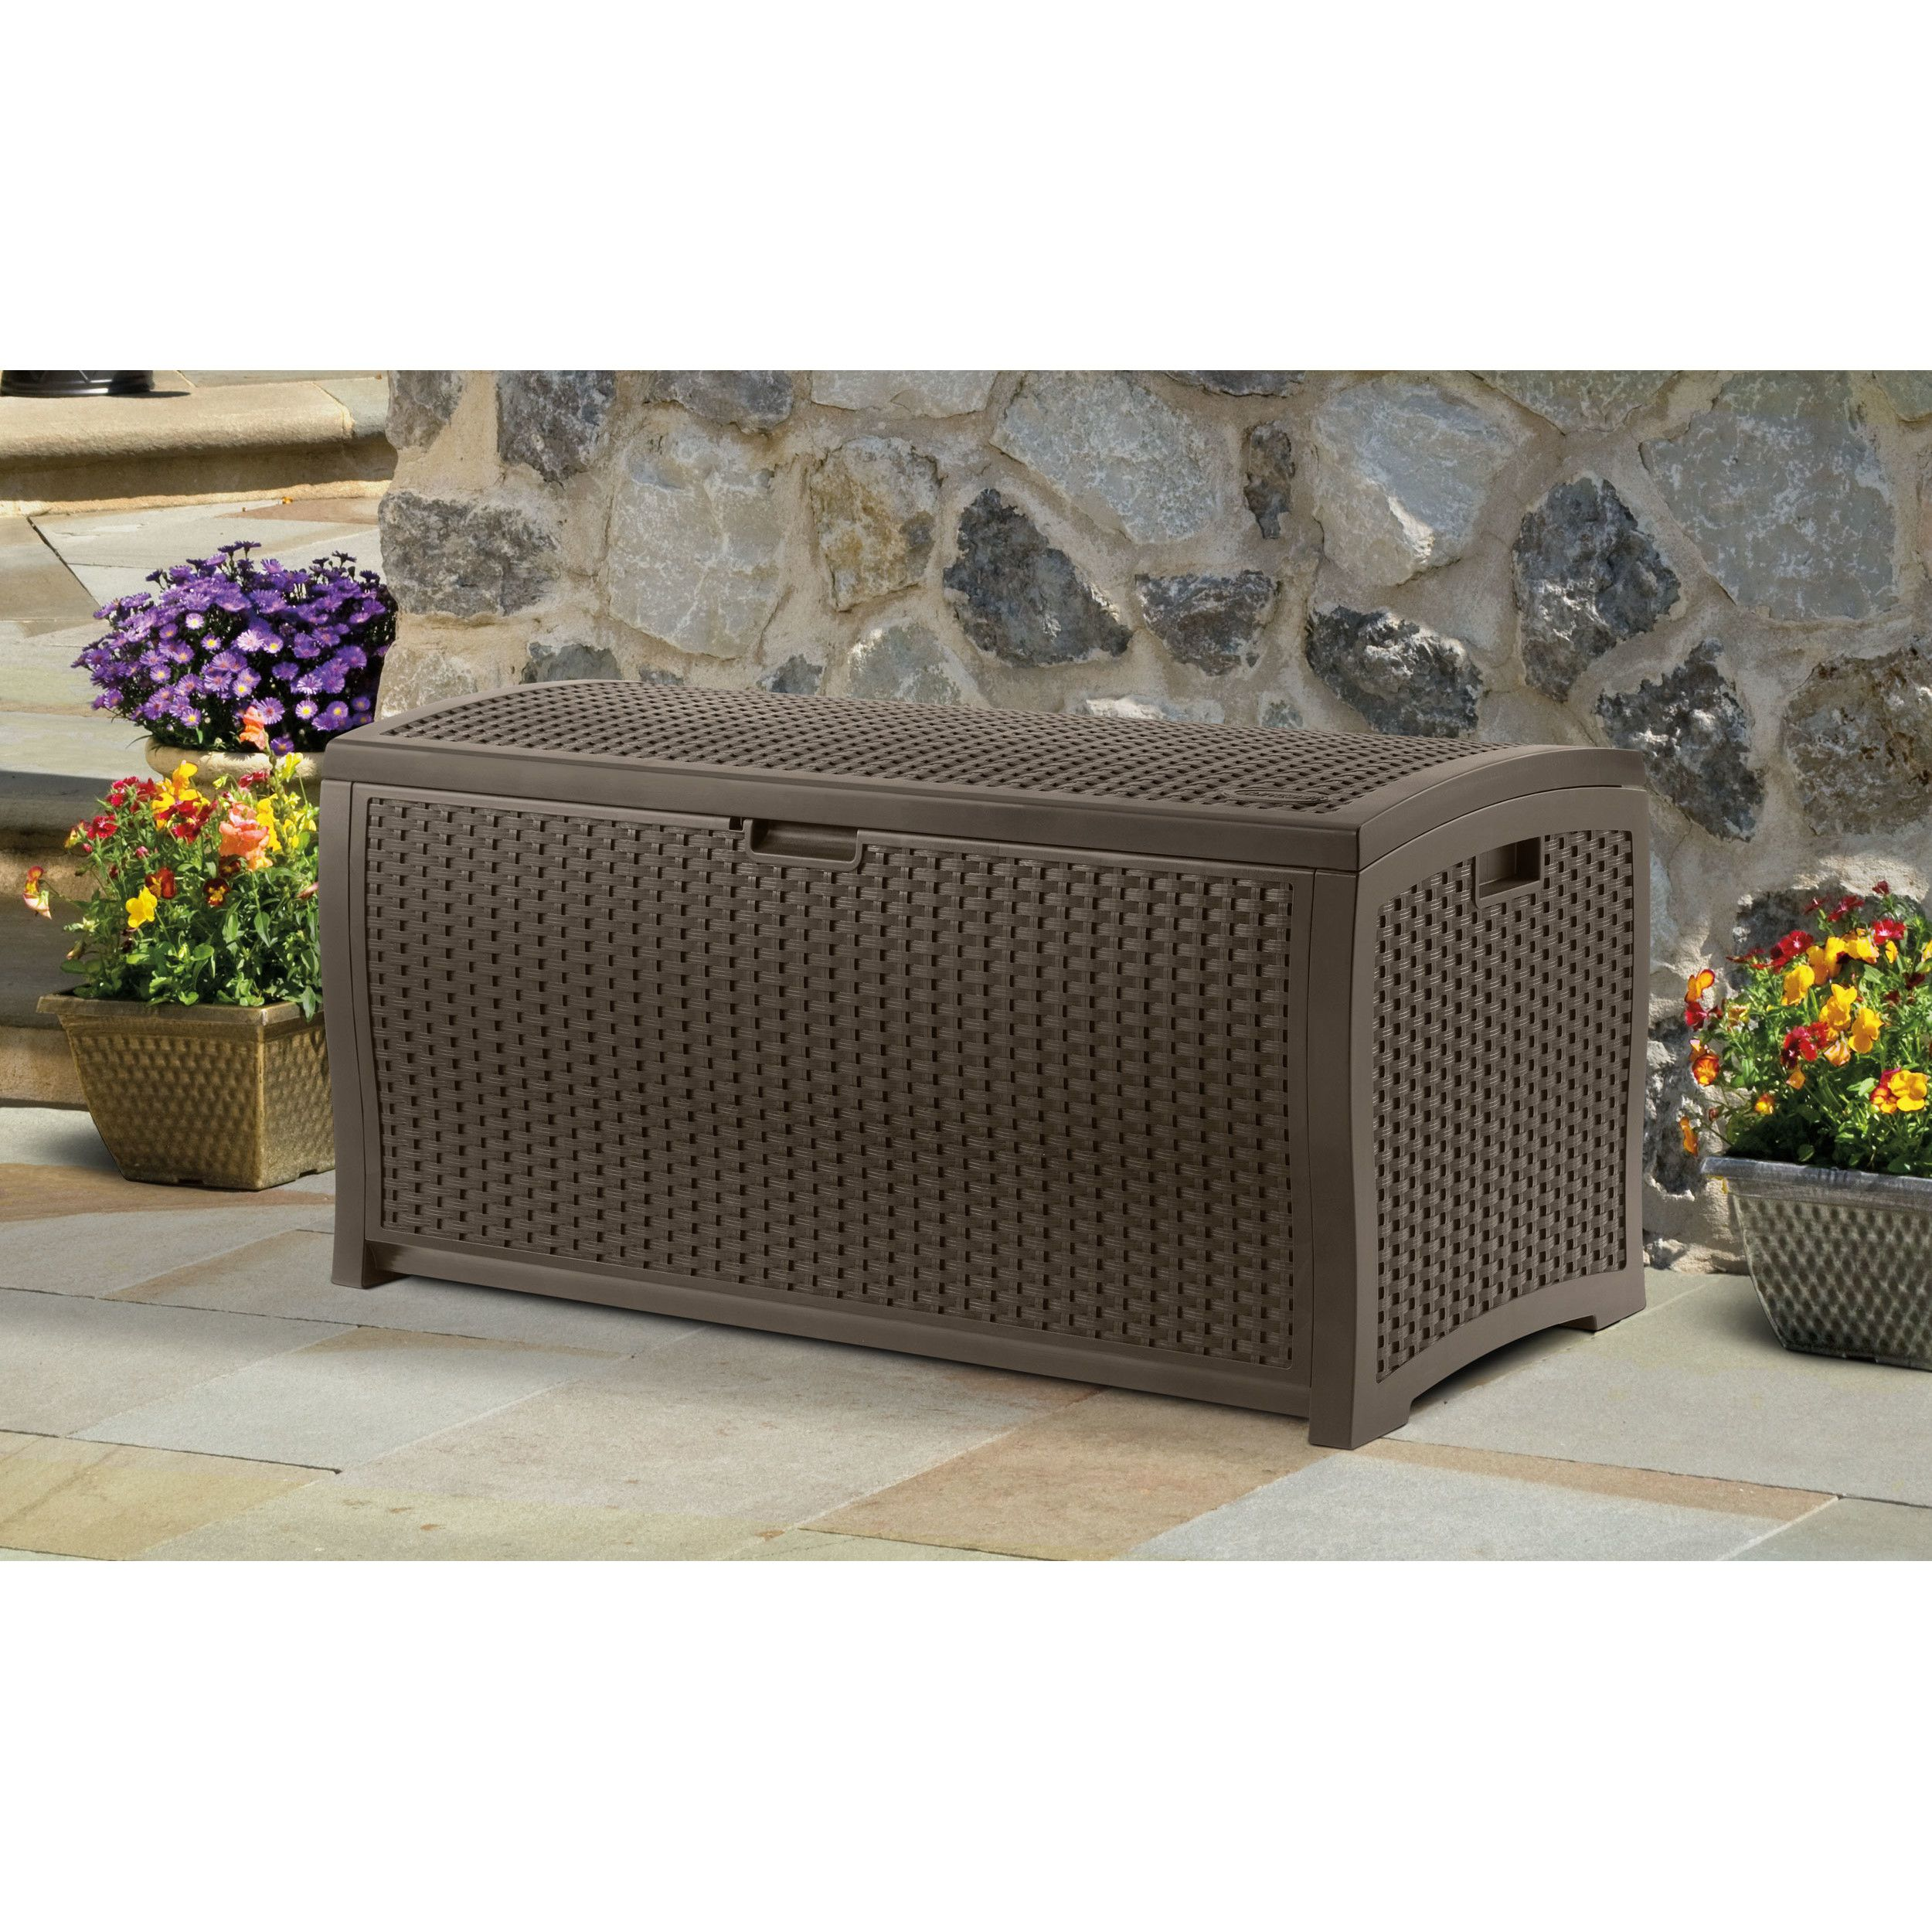 Darby Home Co Halcomb 99 Gallon Deck Box Wicker Deck Box Deck Box Storage Deck Box